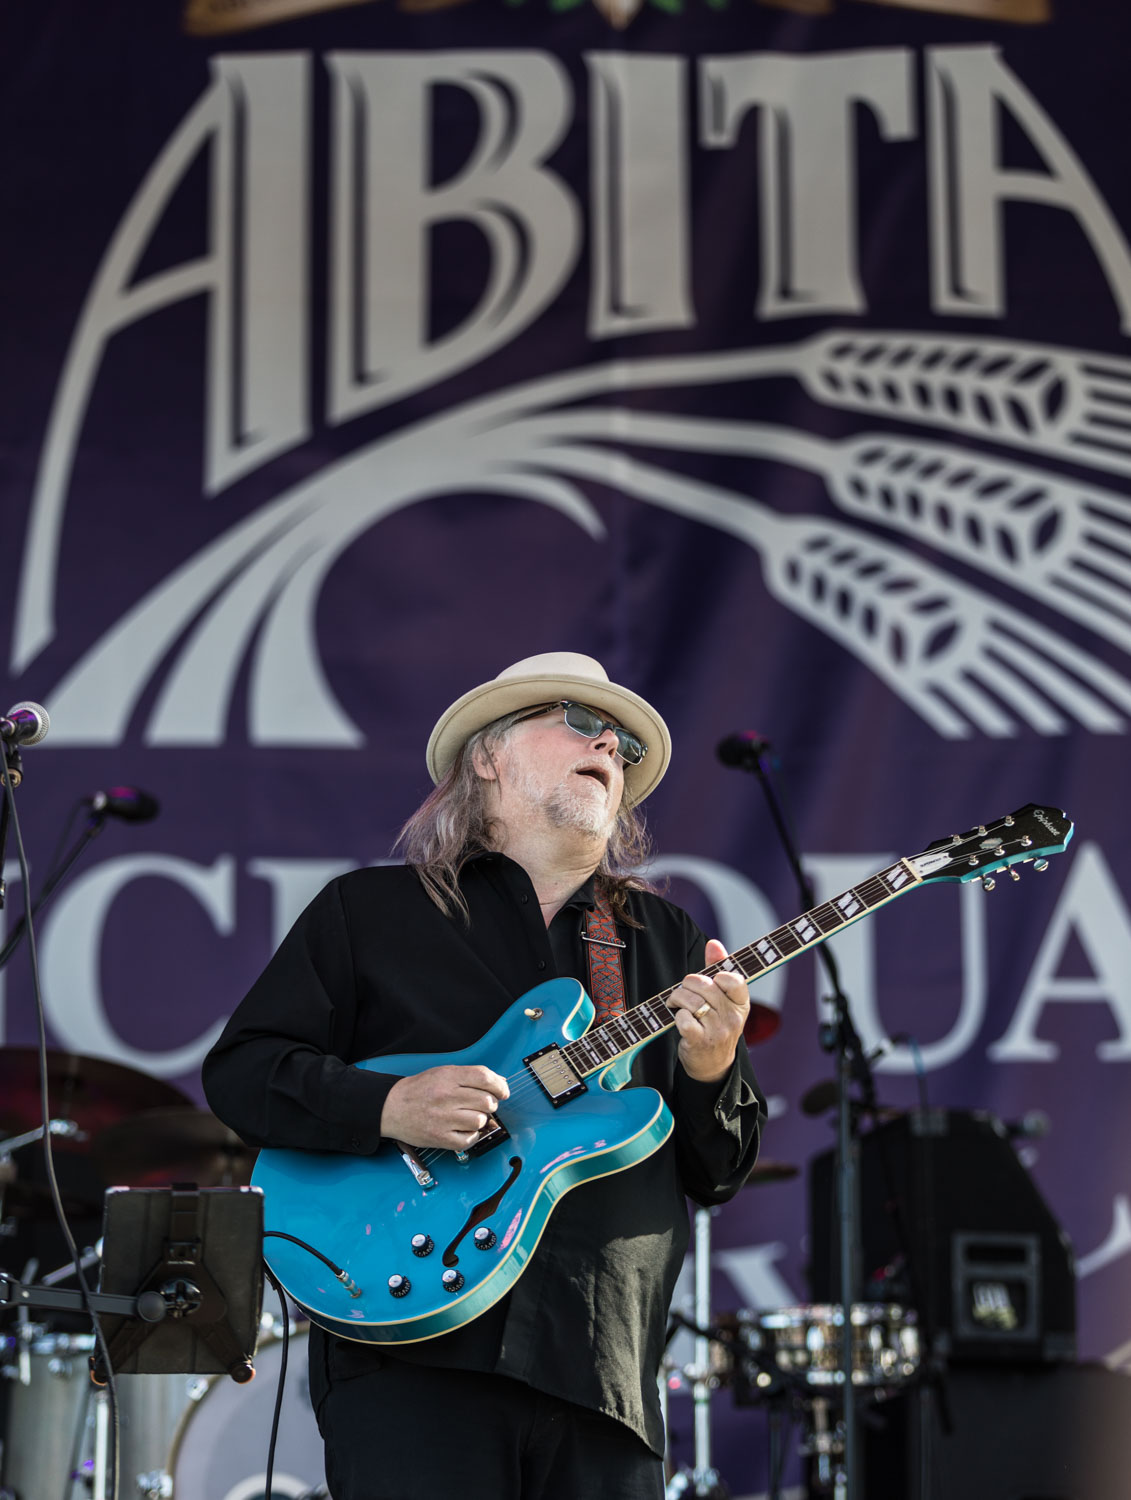 Papa Mali sounded terrific at the Abita Stage during French Quarter Fest.